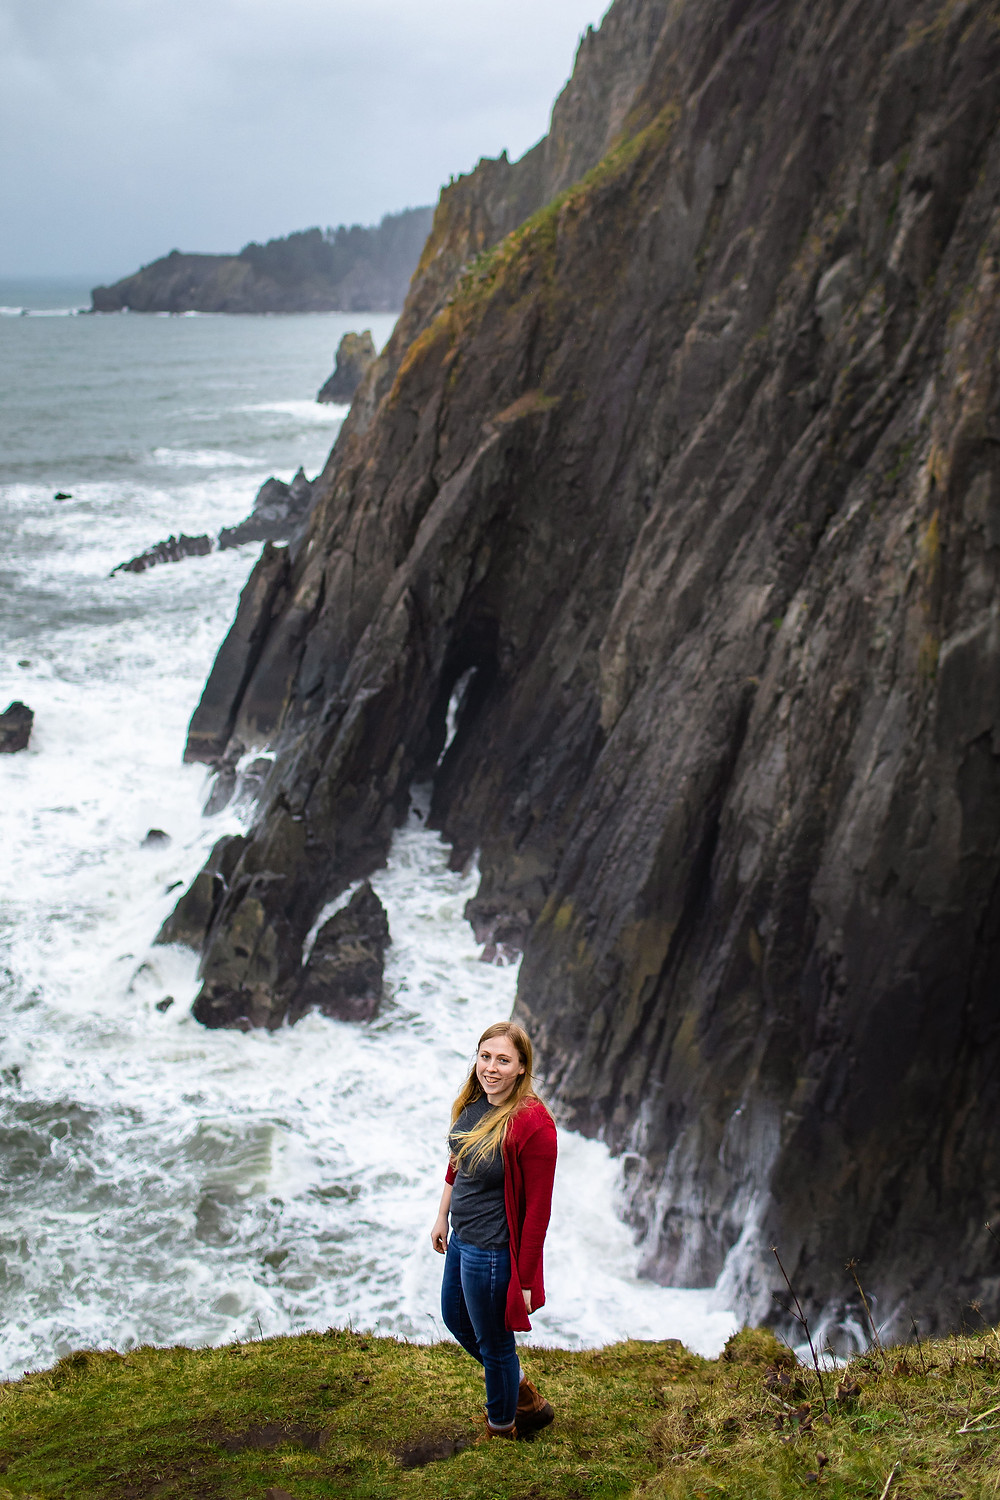 A Washington elopement photographer specializing in adventure elopements and routinely shoots elopements in Olympic National Park